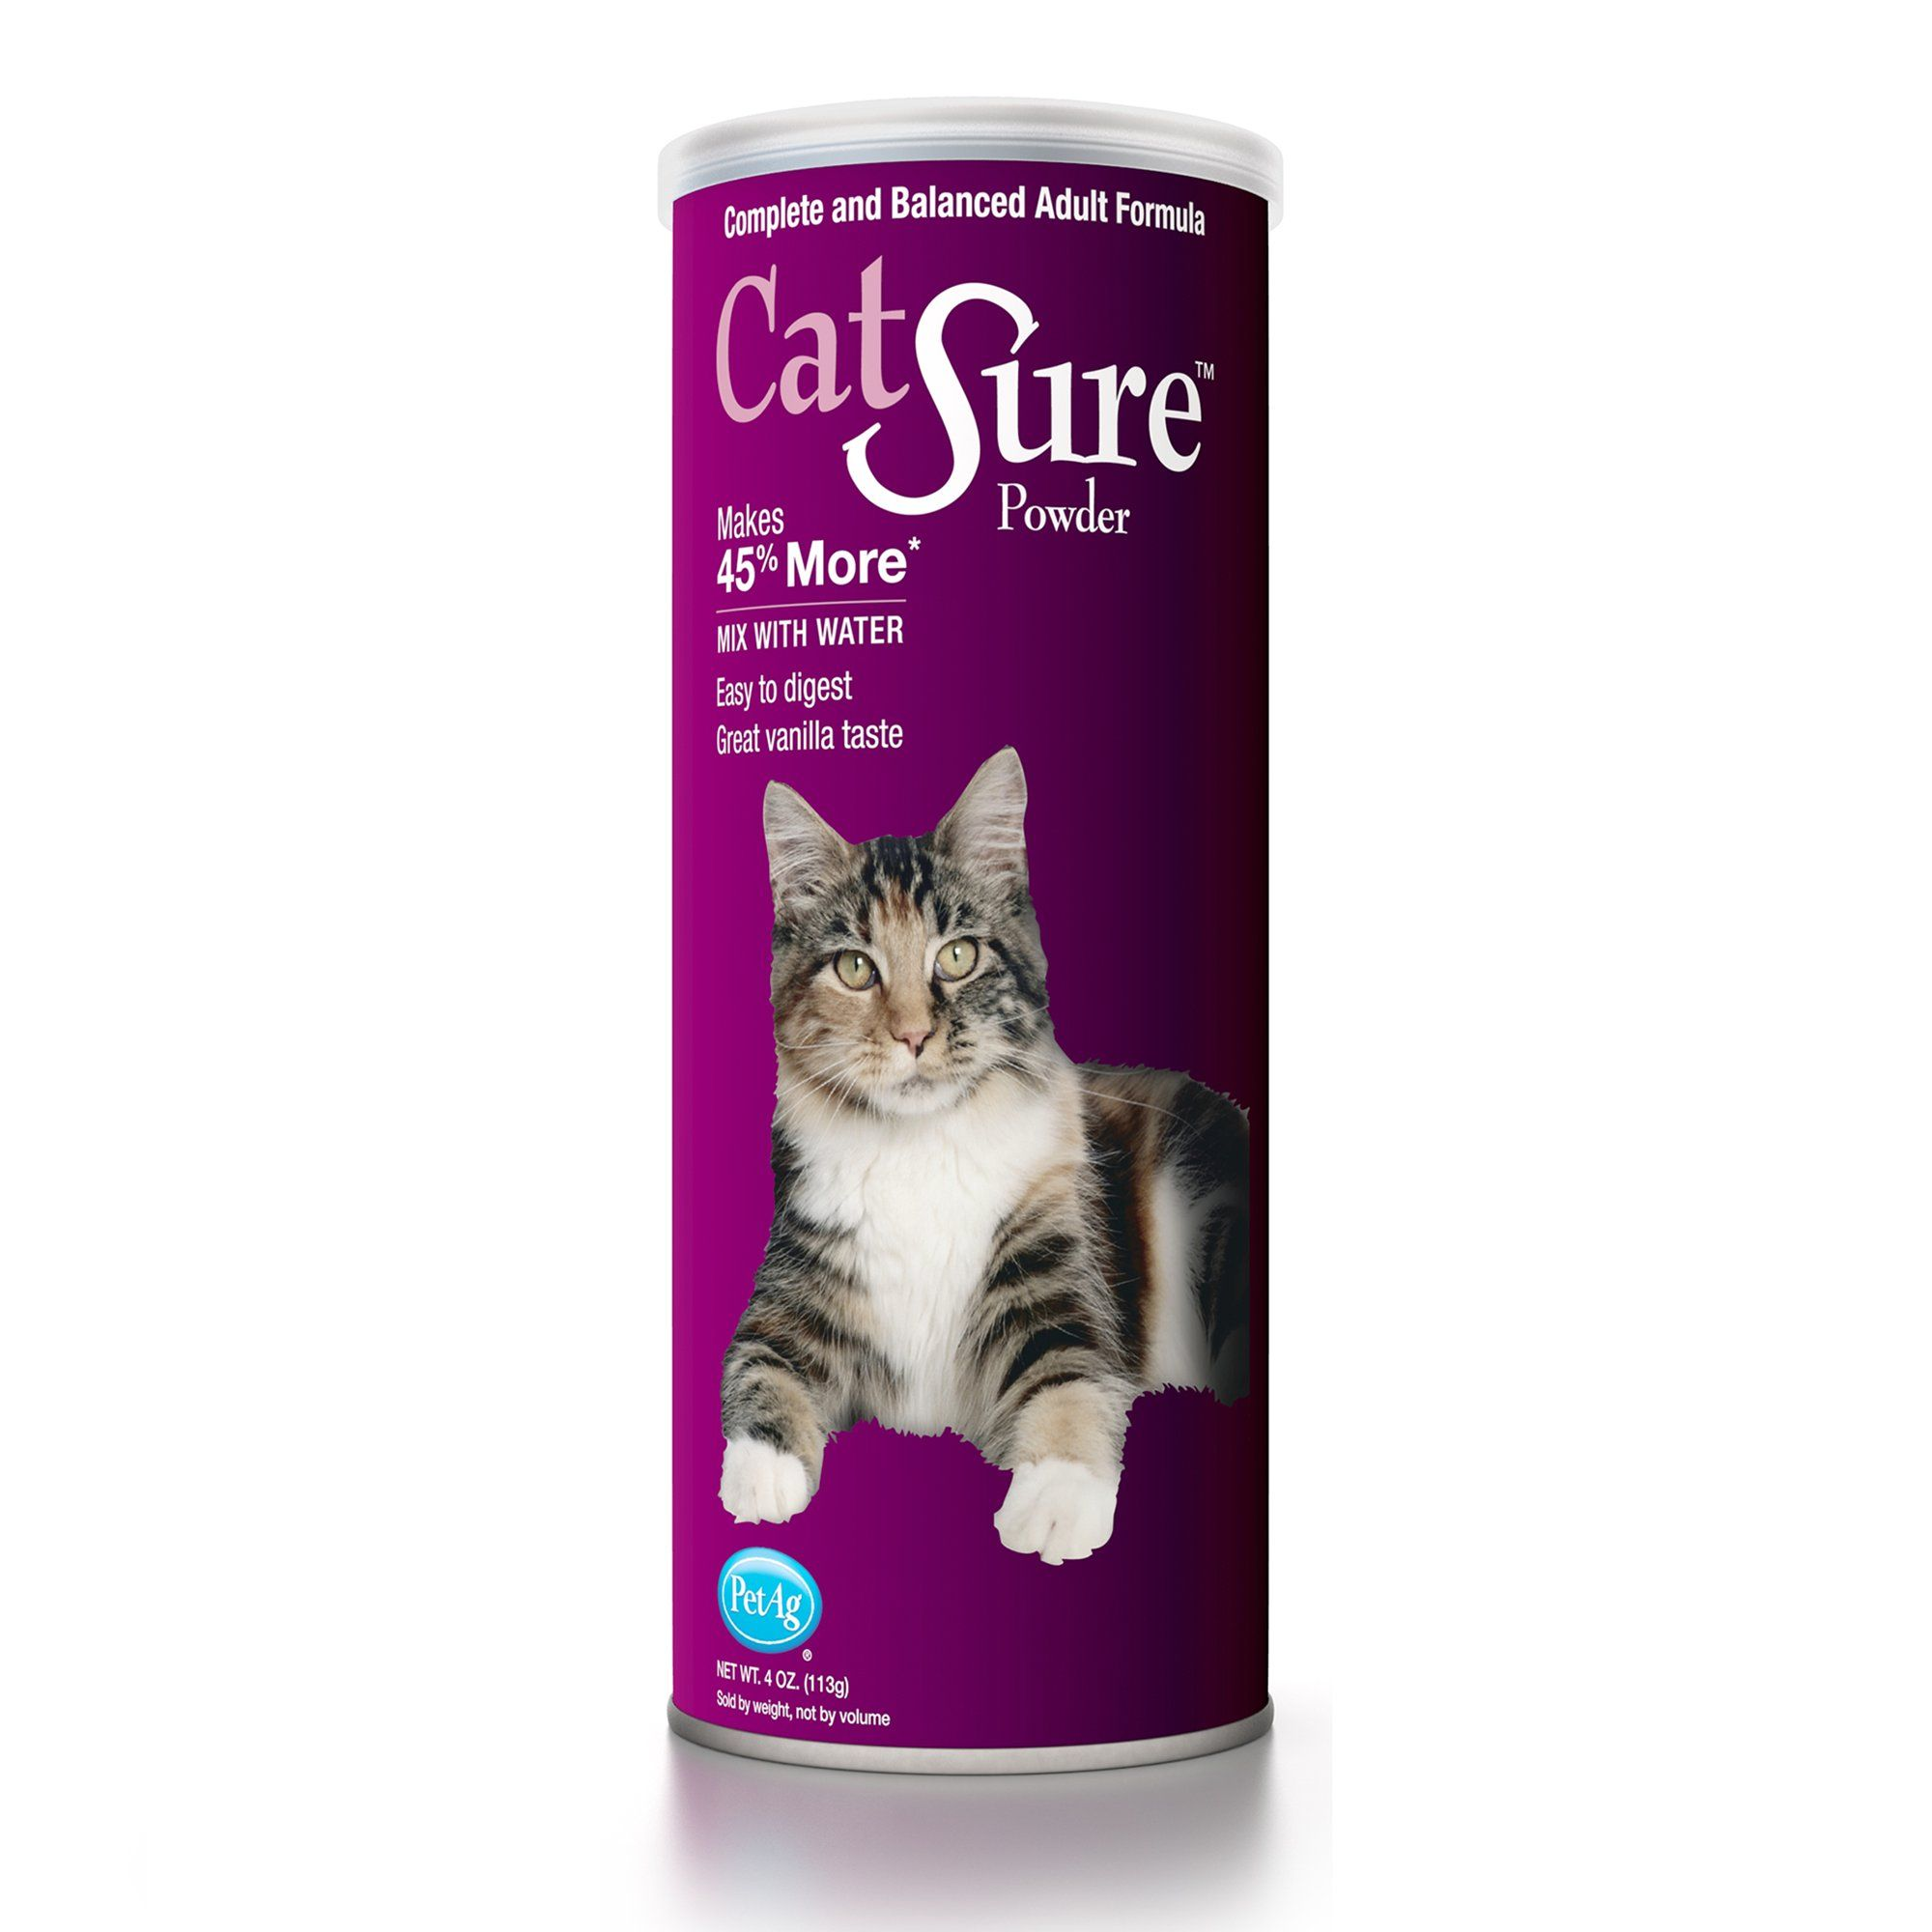 Petag Catsure Powder Meal Replacement For Cats 4 Oz Cat Health